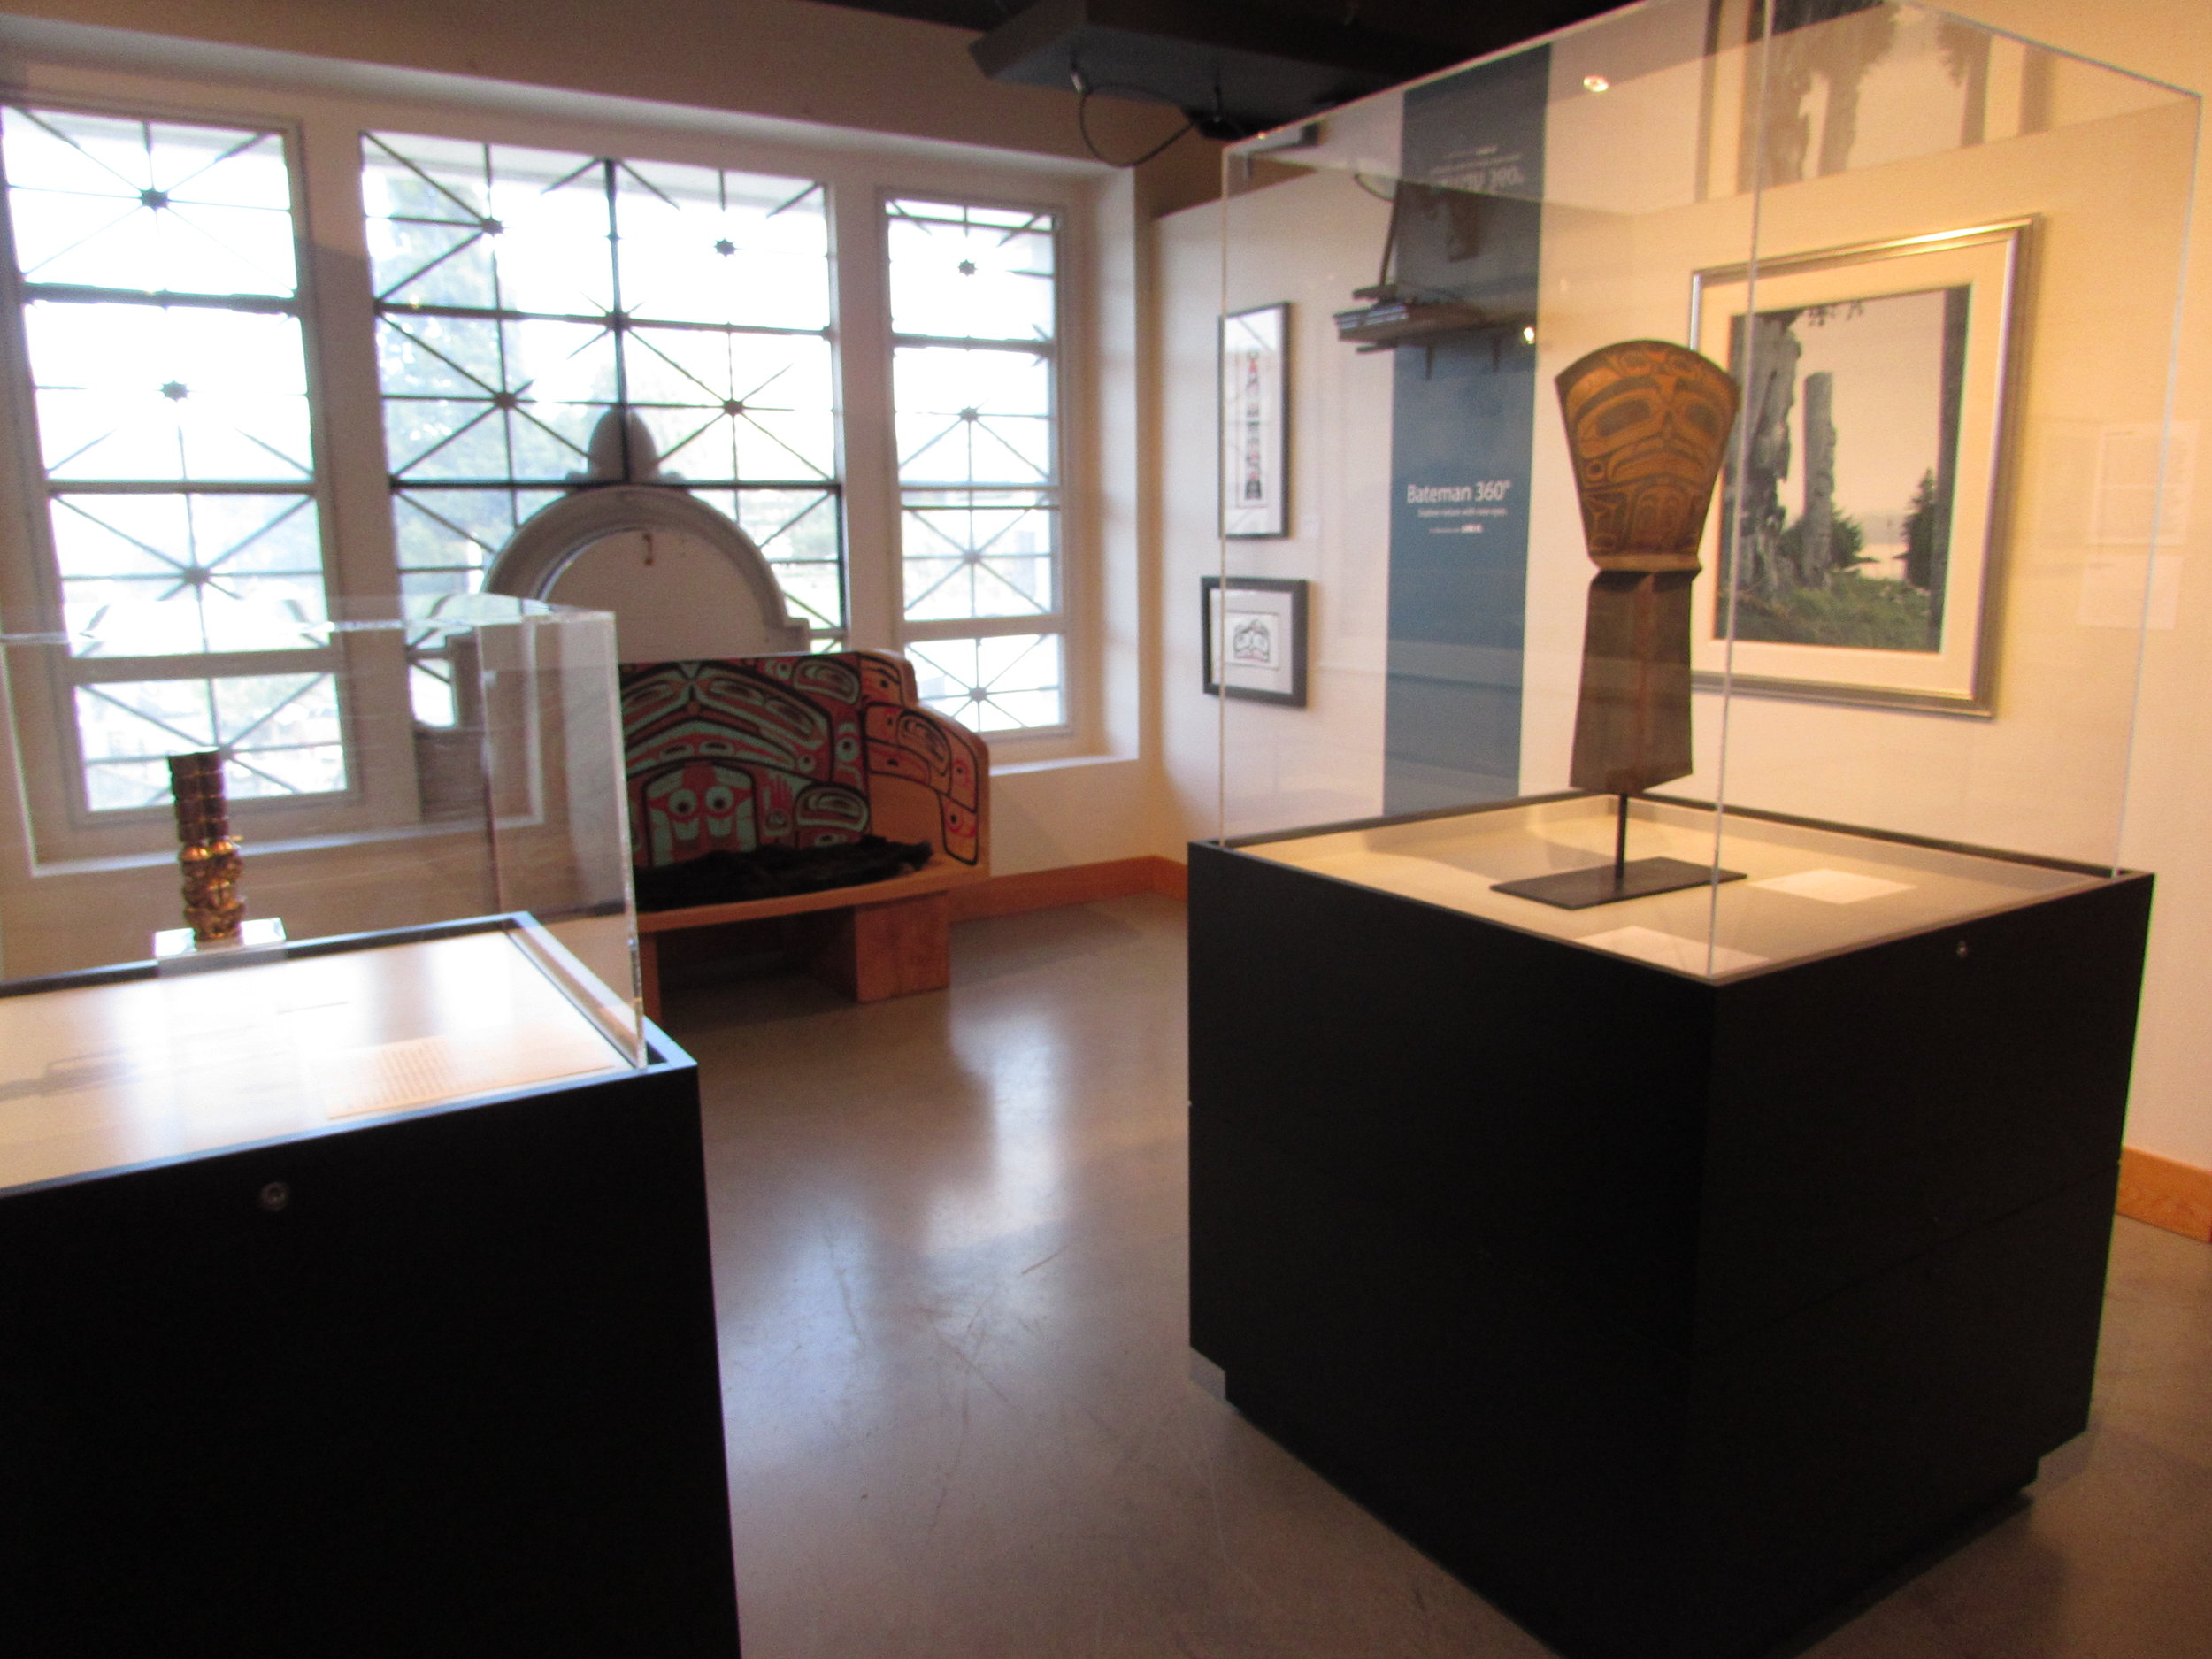 """Jim Hart's """"Three Watchmen"""" maquette (left), bench by Jaalen Edenshaw & Guujaaw (back centre), Jaalen Edenshaw's """"The Wealth Bringer"""" copper shield (right), and W. David Ward's """"Cast in Memory"""" painting (back right)"""